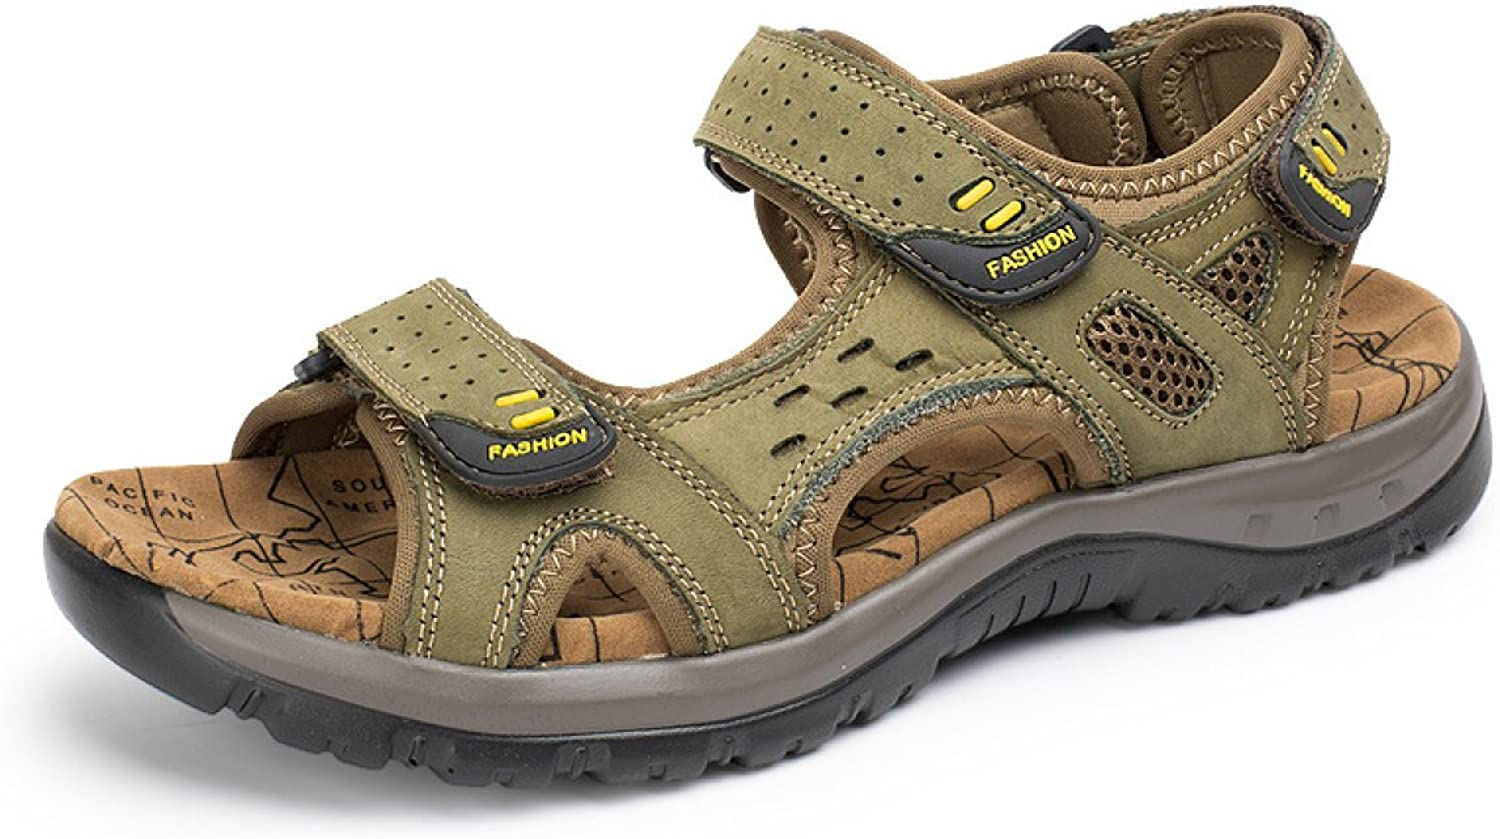 LXXAMens Summer Beach Light Weight Outdoor shoes Velcro Real Leather Sports Sandals Athletic Sneakers